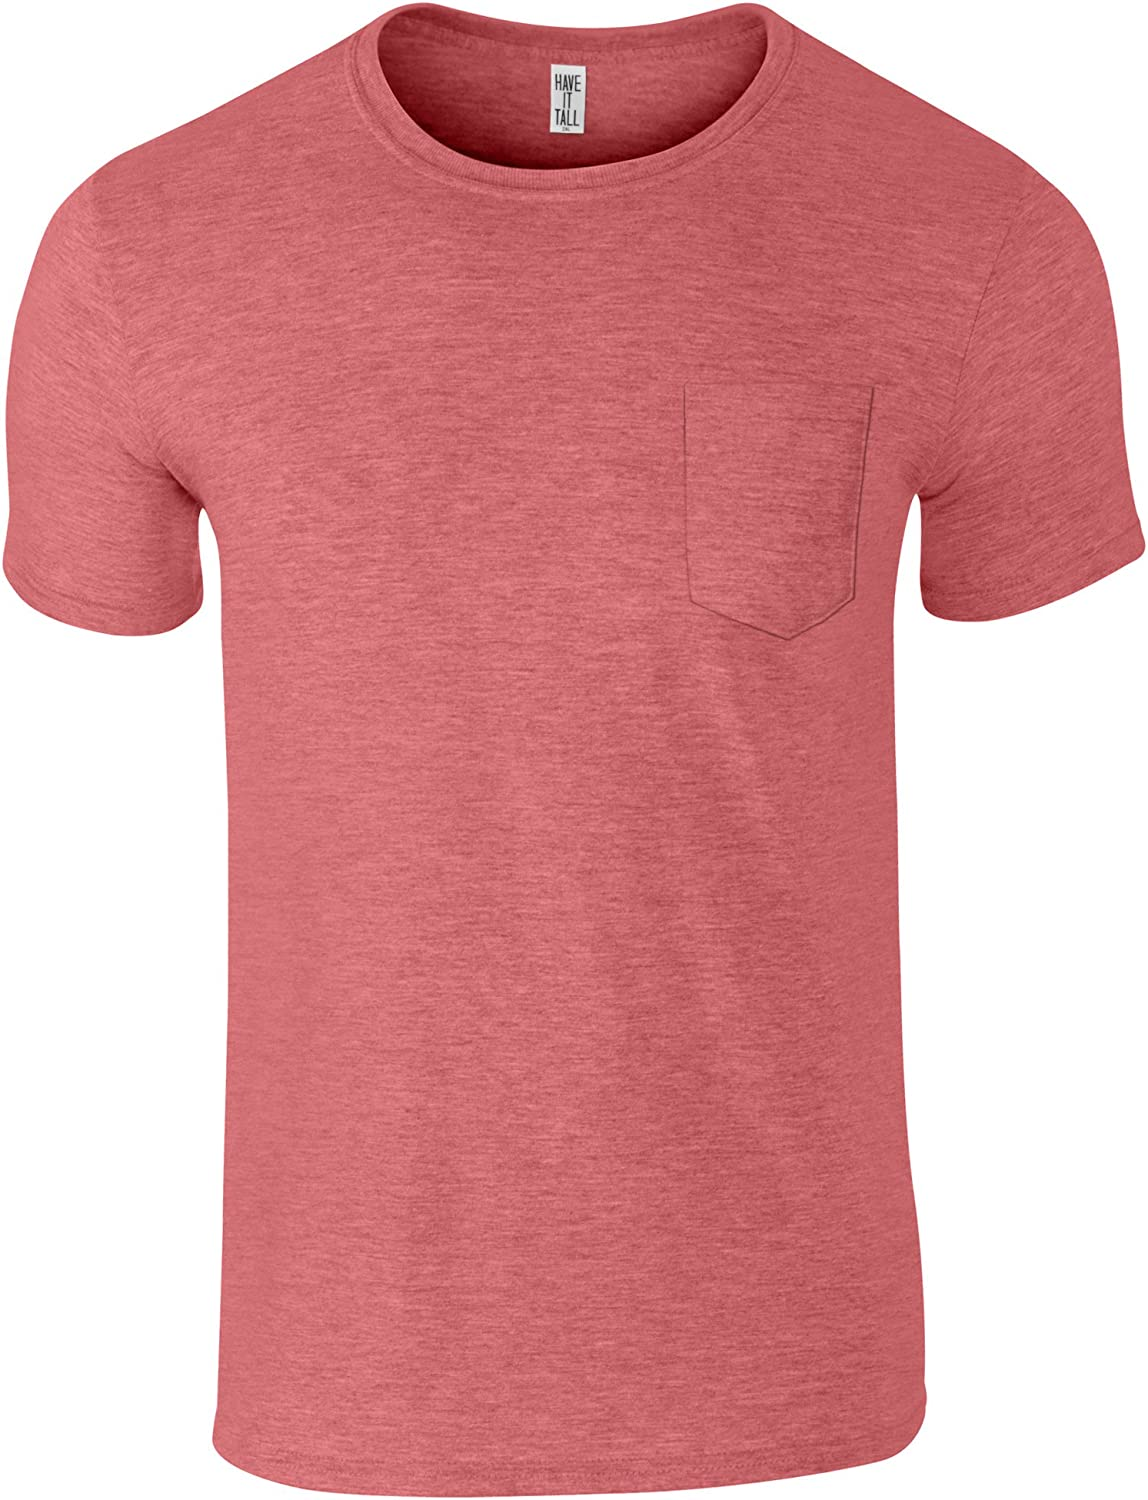 Have It Tall Mens Tall Pocket T Shirt Soft Blend Fabric